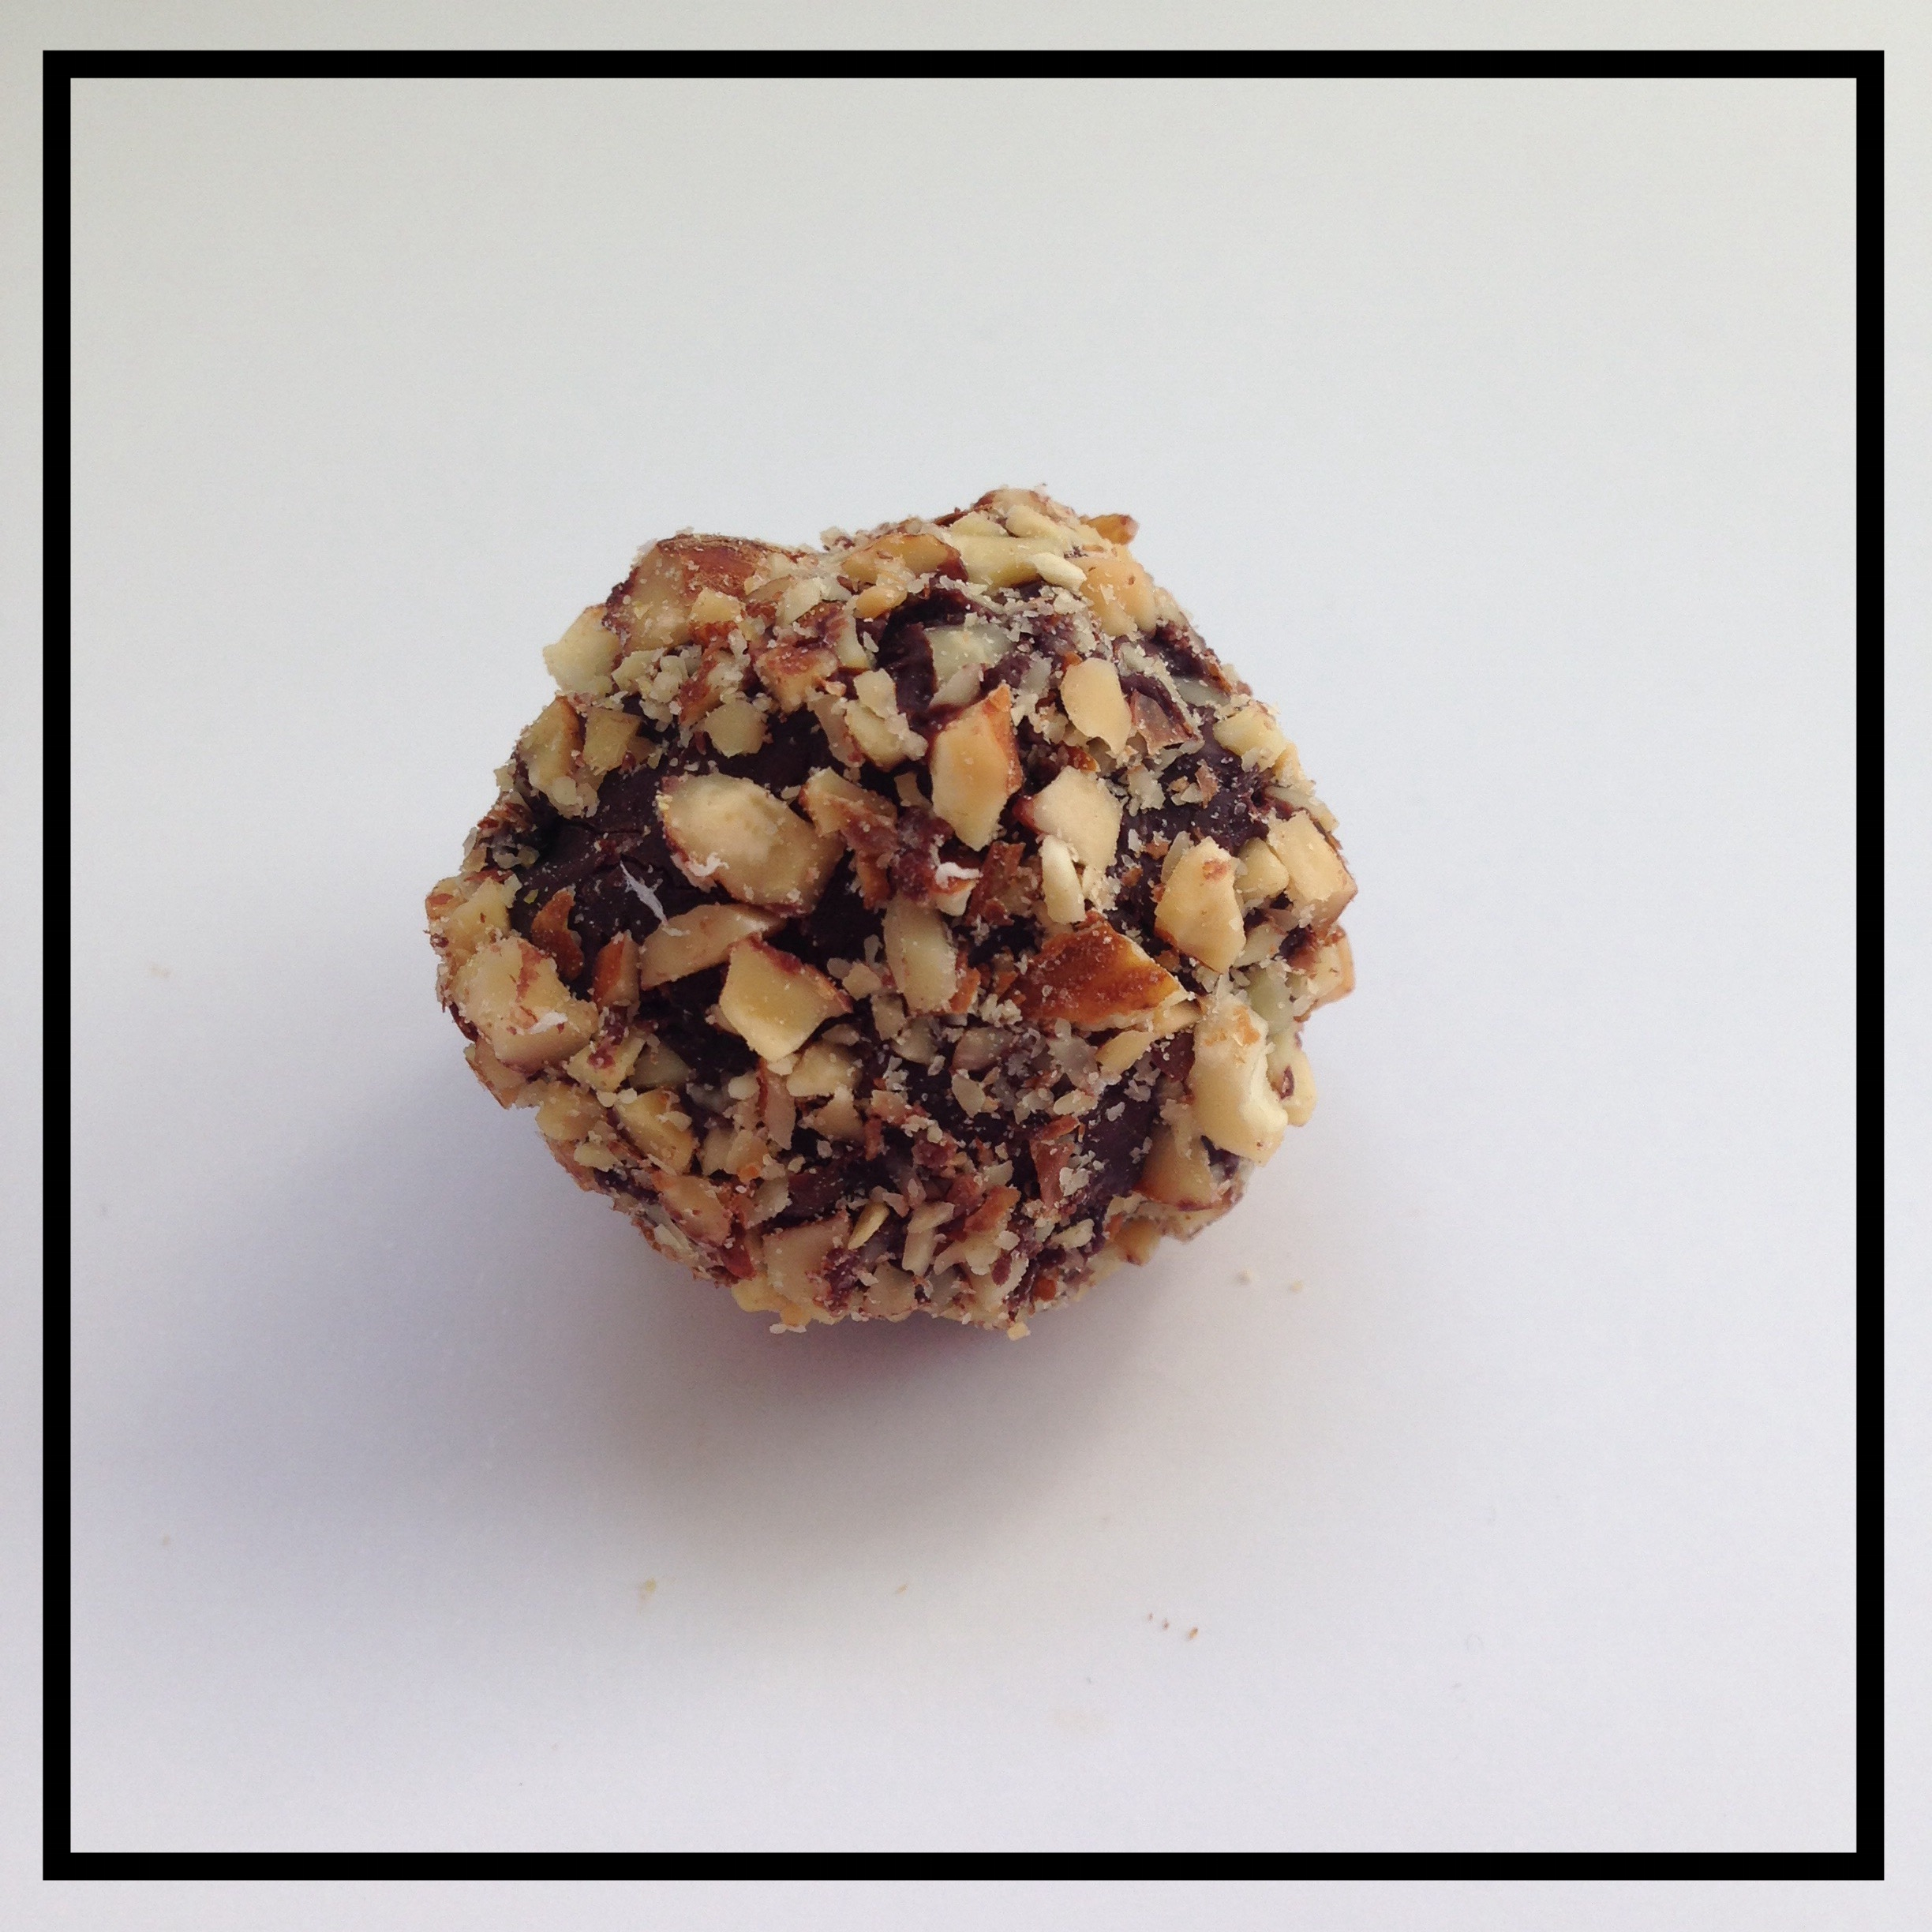 ALMOND   Crushed almonds combined with chocolate ganache, coated in crushed almonds